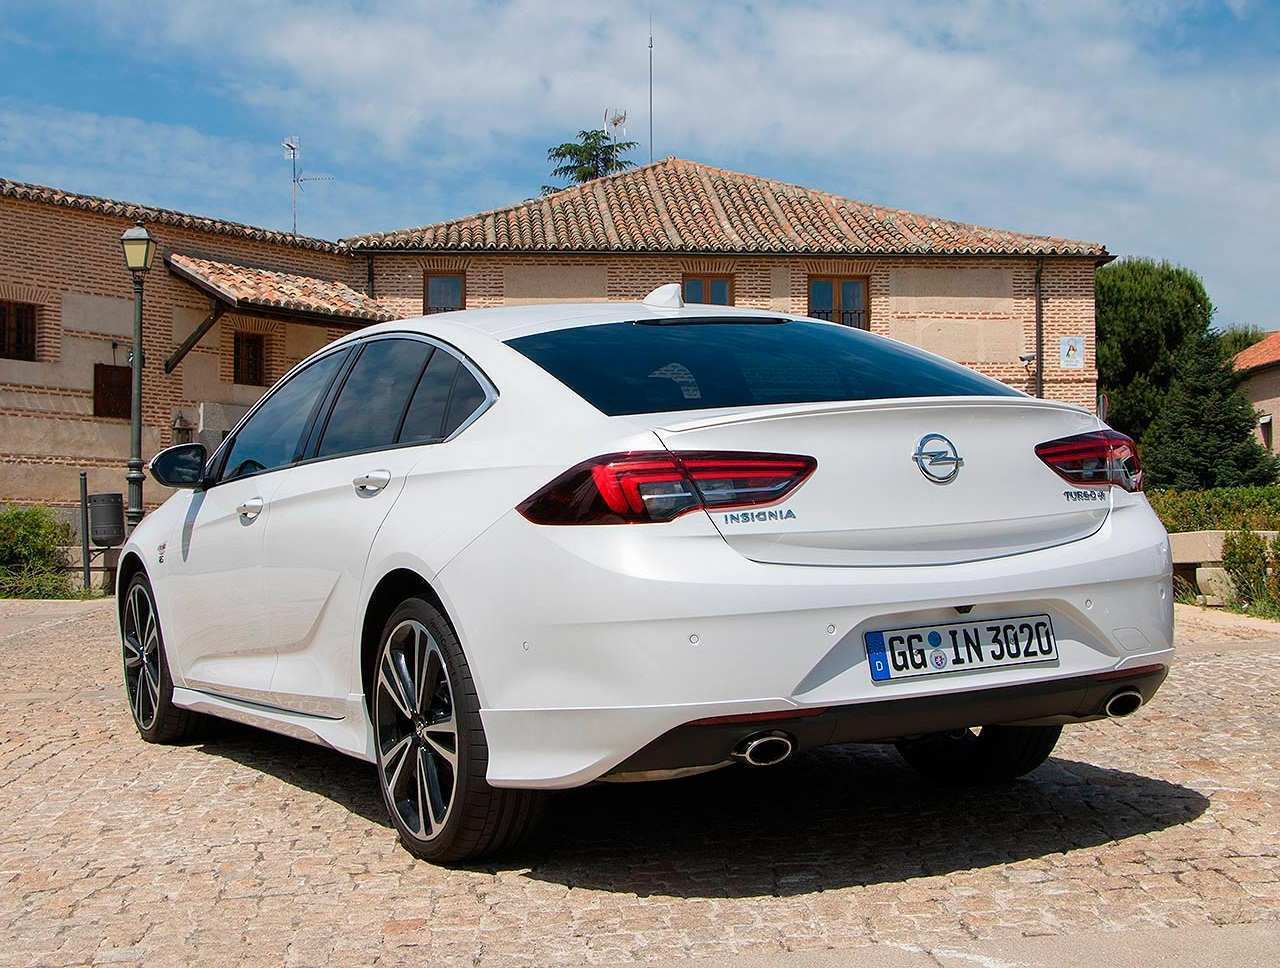 61 Best Review Opel Insignia 2020 Specs and Review by Opel Insignia 2020